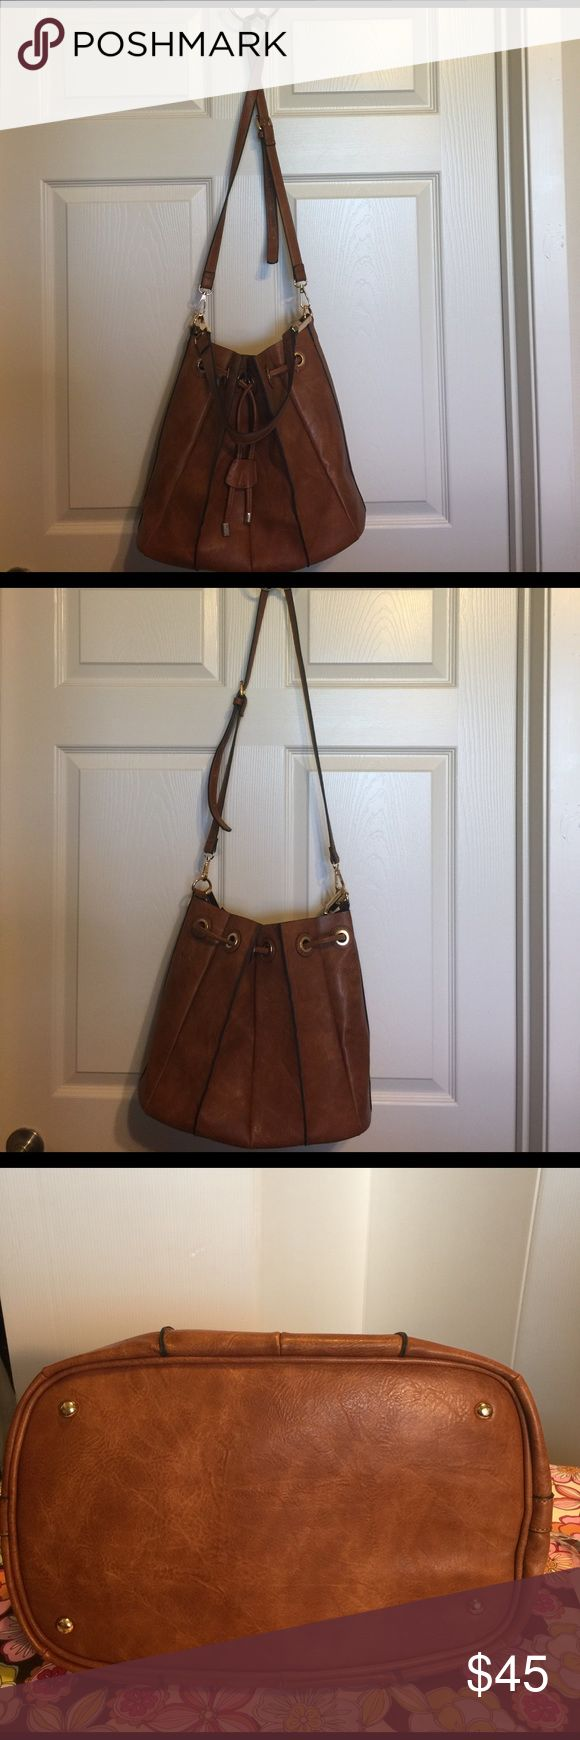 Gabriella Rocha hobo tote Beautiful tote very clean and in excellent condition has a inter purse in the middle of this purse Bags Crossbody Bags